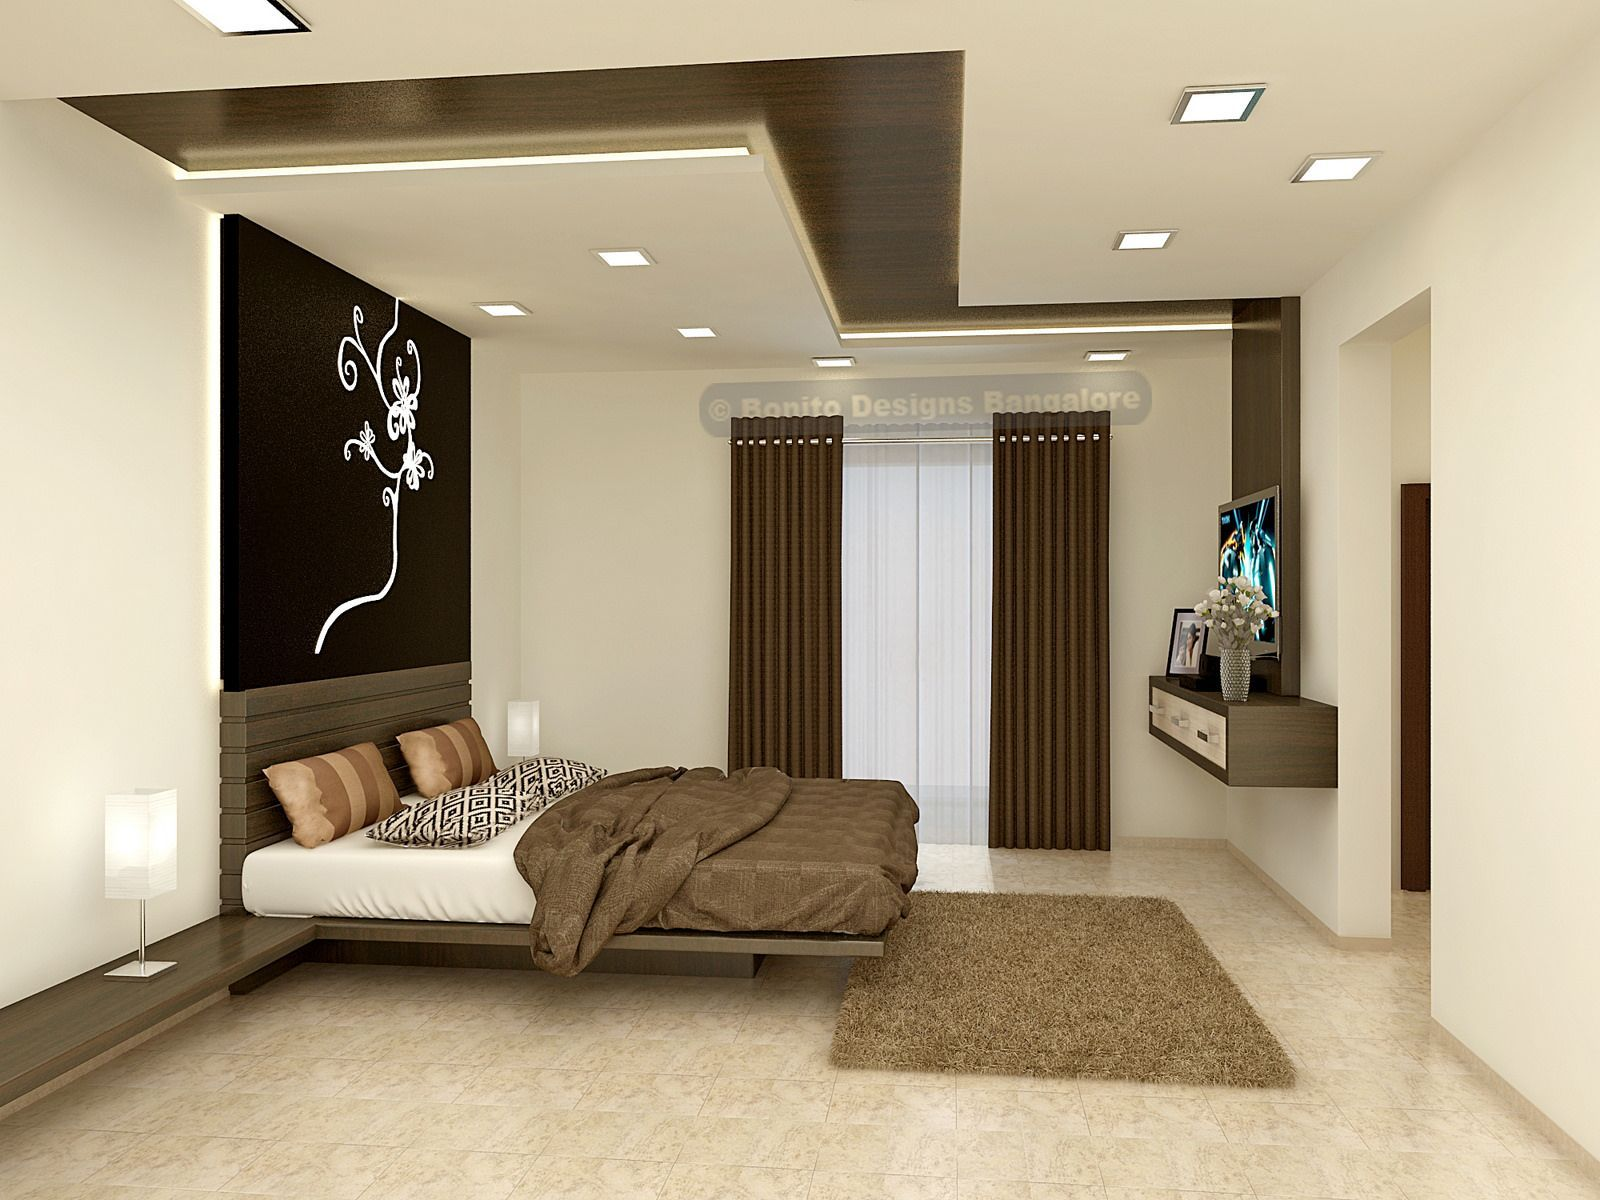 Not Just Functional The Plastered False Ceiling Could Also Double Up As A Decor Ceiling Design Living Room Bedroom False Ceiling Design Ceiling Design Bedroom